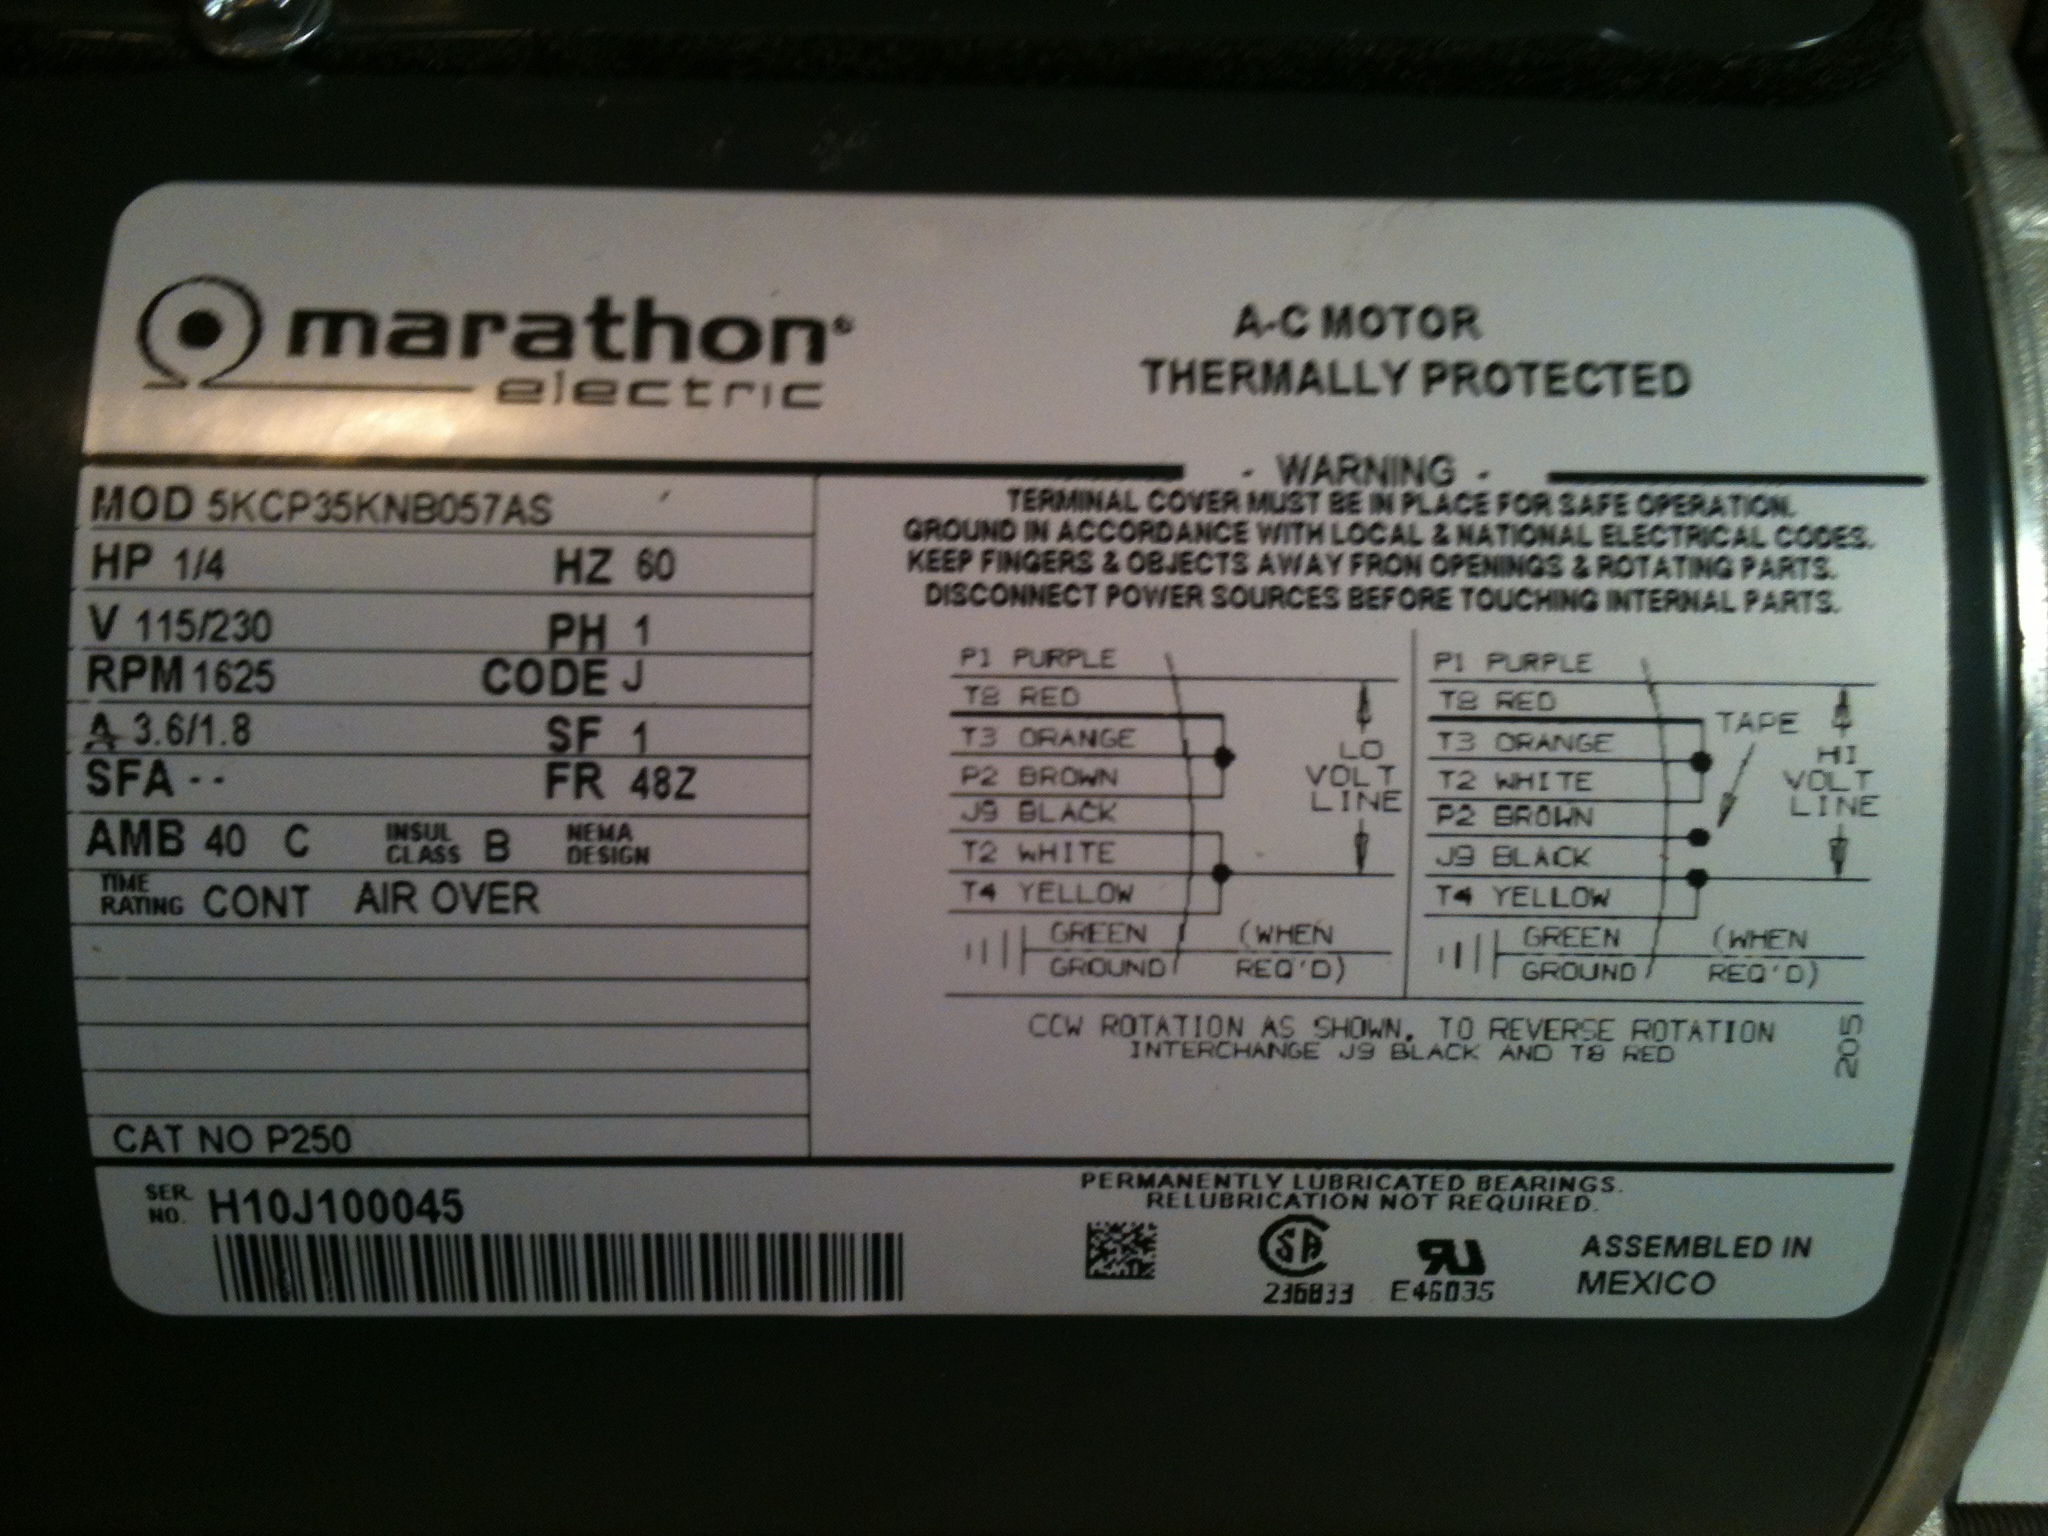 need help with marathon electric ac motor wiring rh justanswer com